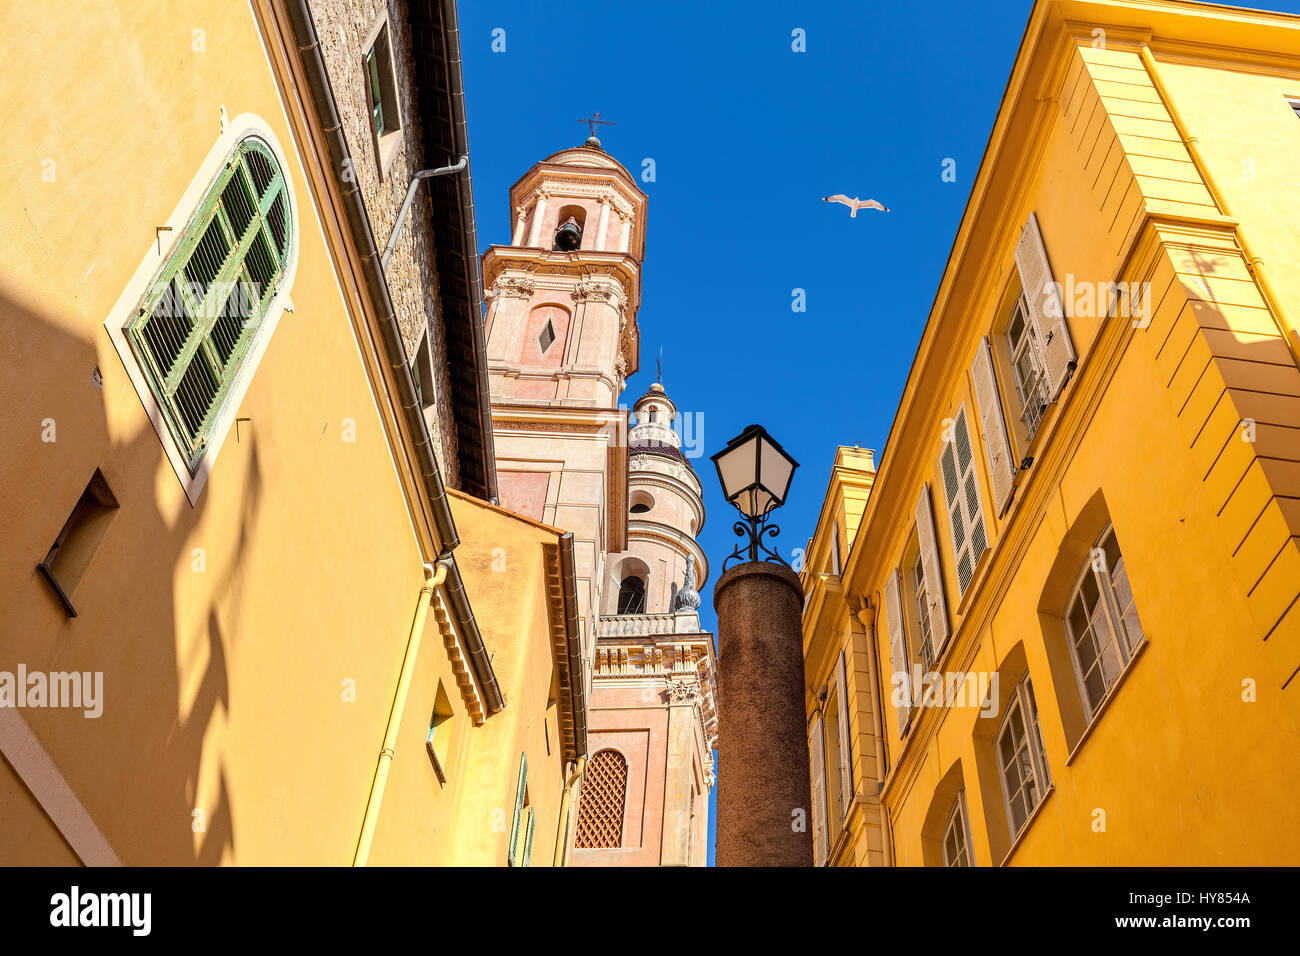 Belfry of Saint-Michel Archange basilica among colorful houses under blu sky in old town of Menton, France. Stock Photo